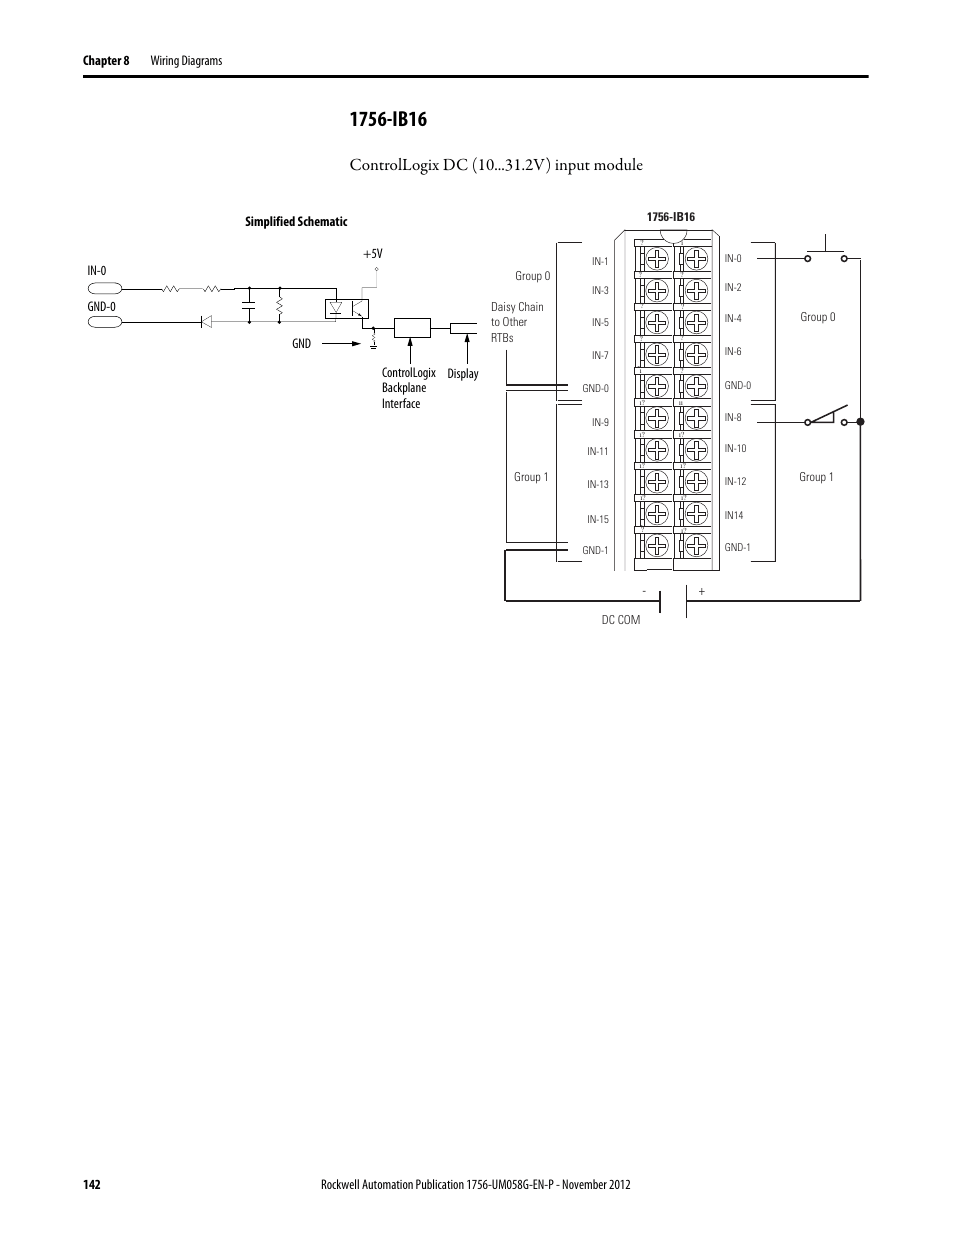 rockwell automation 1756 xxxx controllogix digital i_o modules page142?resize\\\=665%2C861 terrific 1756 if16 wiring diagram images wiring schematic  at edmiracle.co